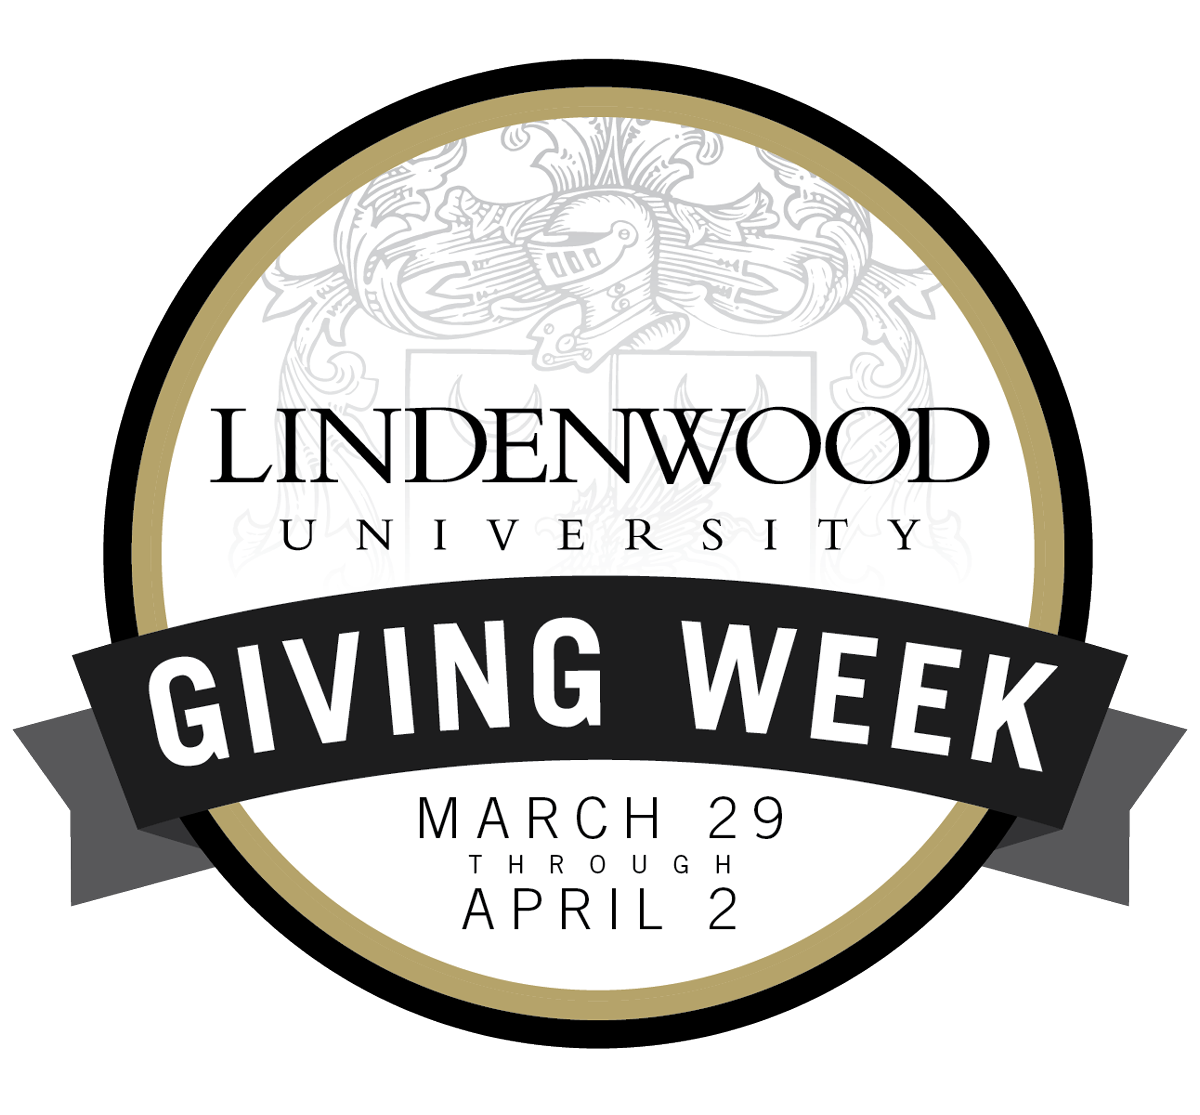 Giving Week - March 29 through April 2